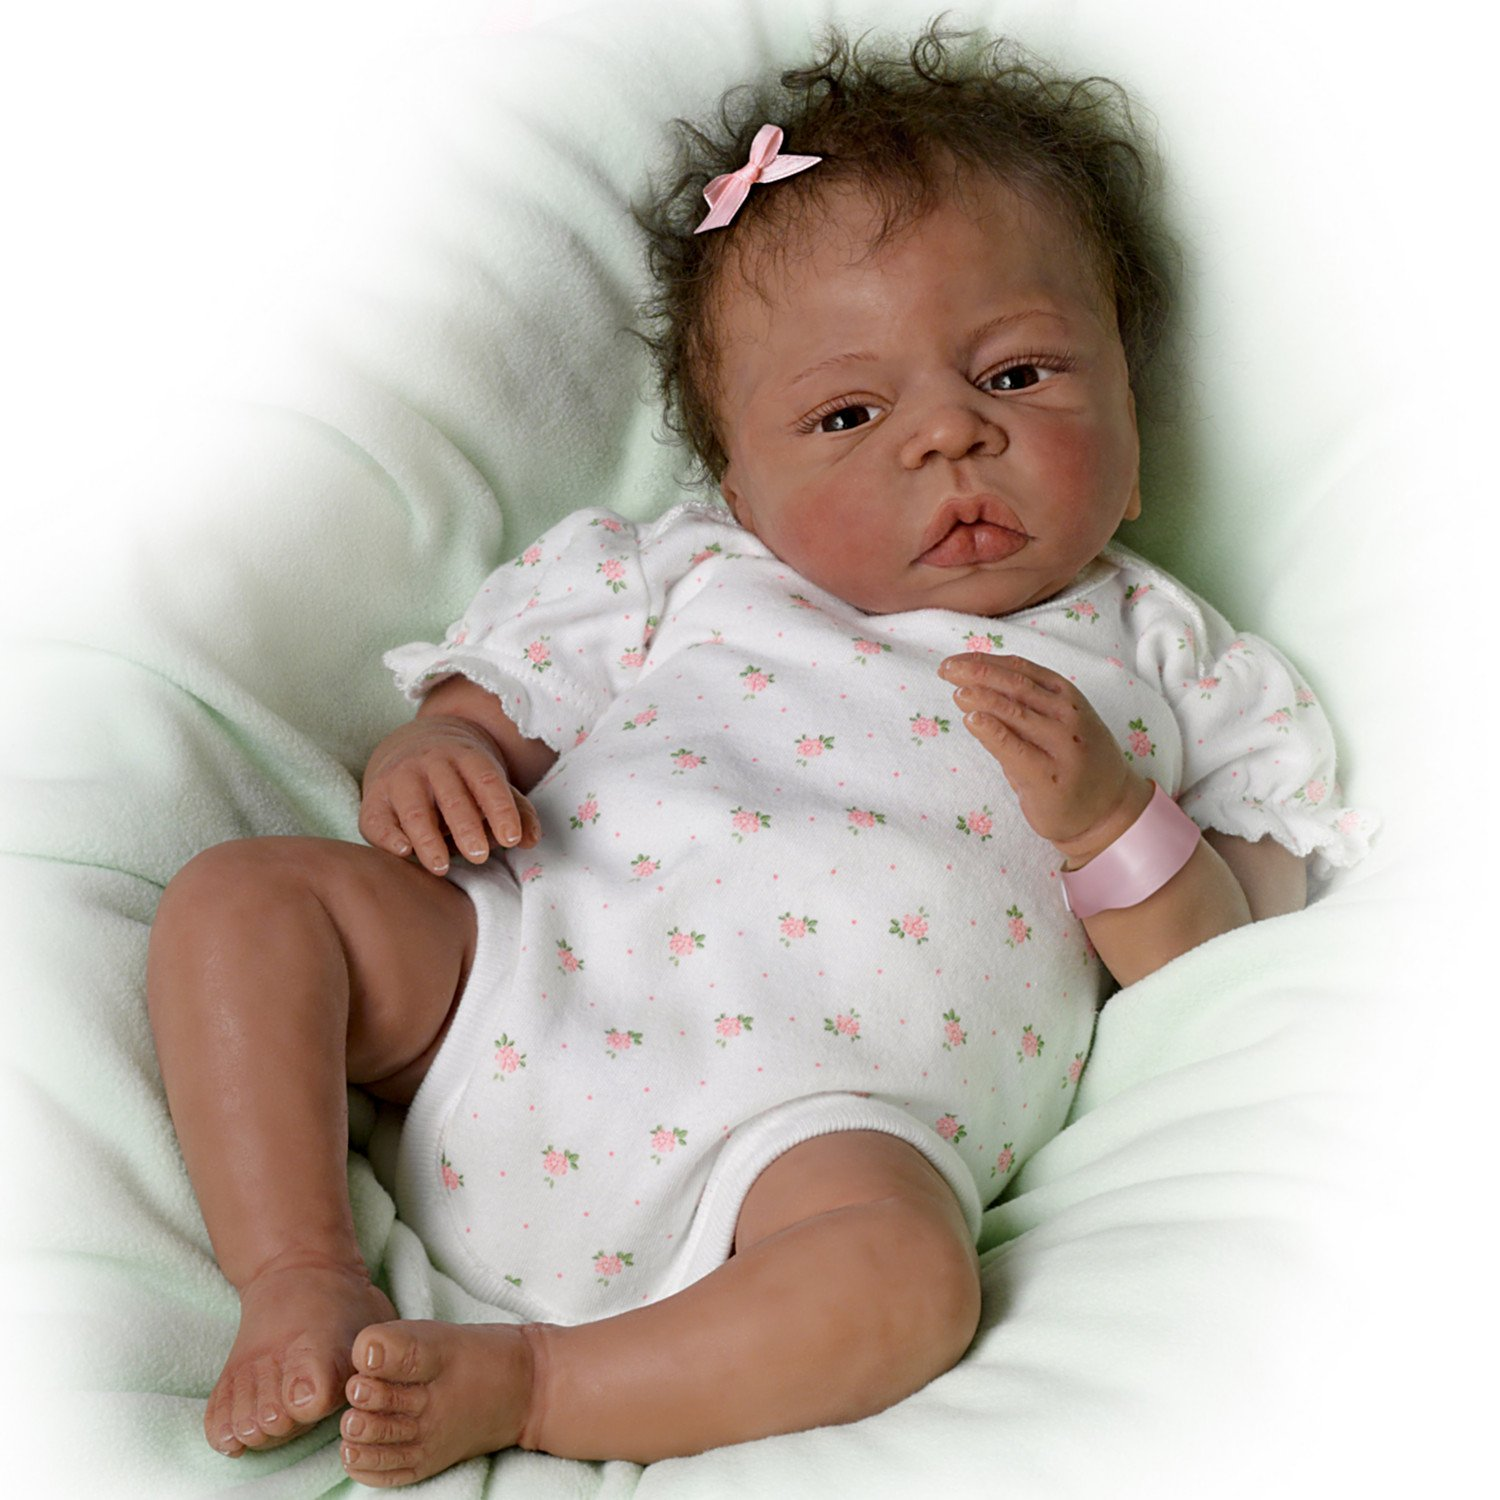 Donna Lee Baby Doll: So Blessed So Truly Real Newborn Baby Doll by The Ashton-Drake Galleries by The Ashton-Drake Galleries